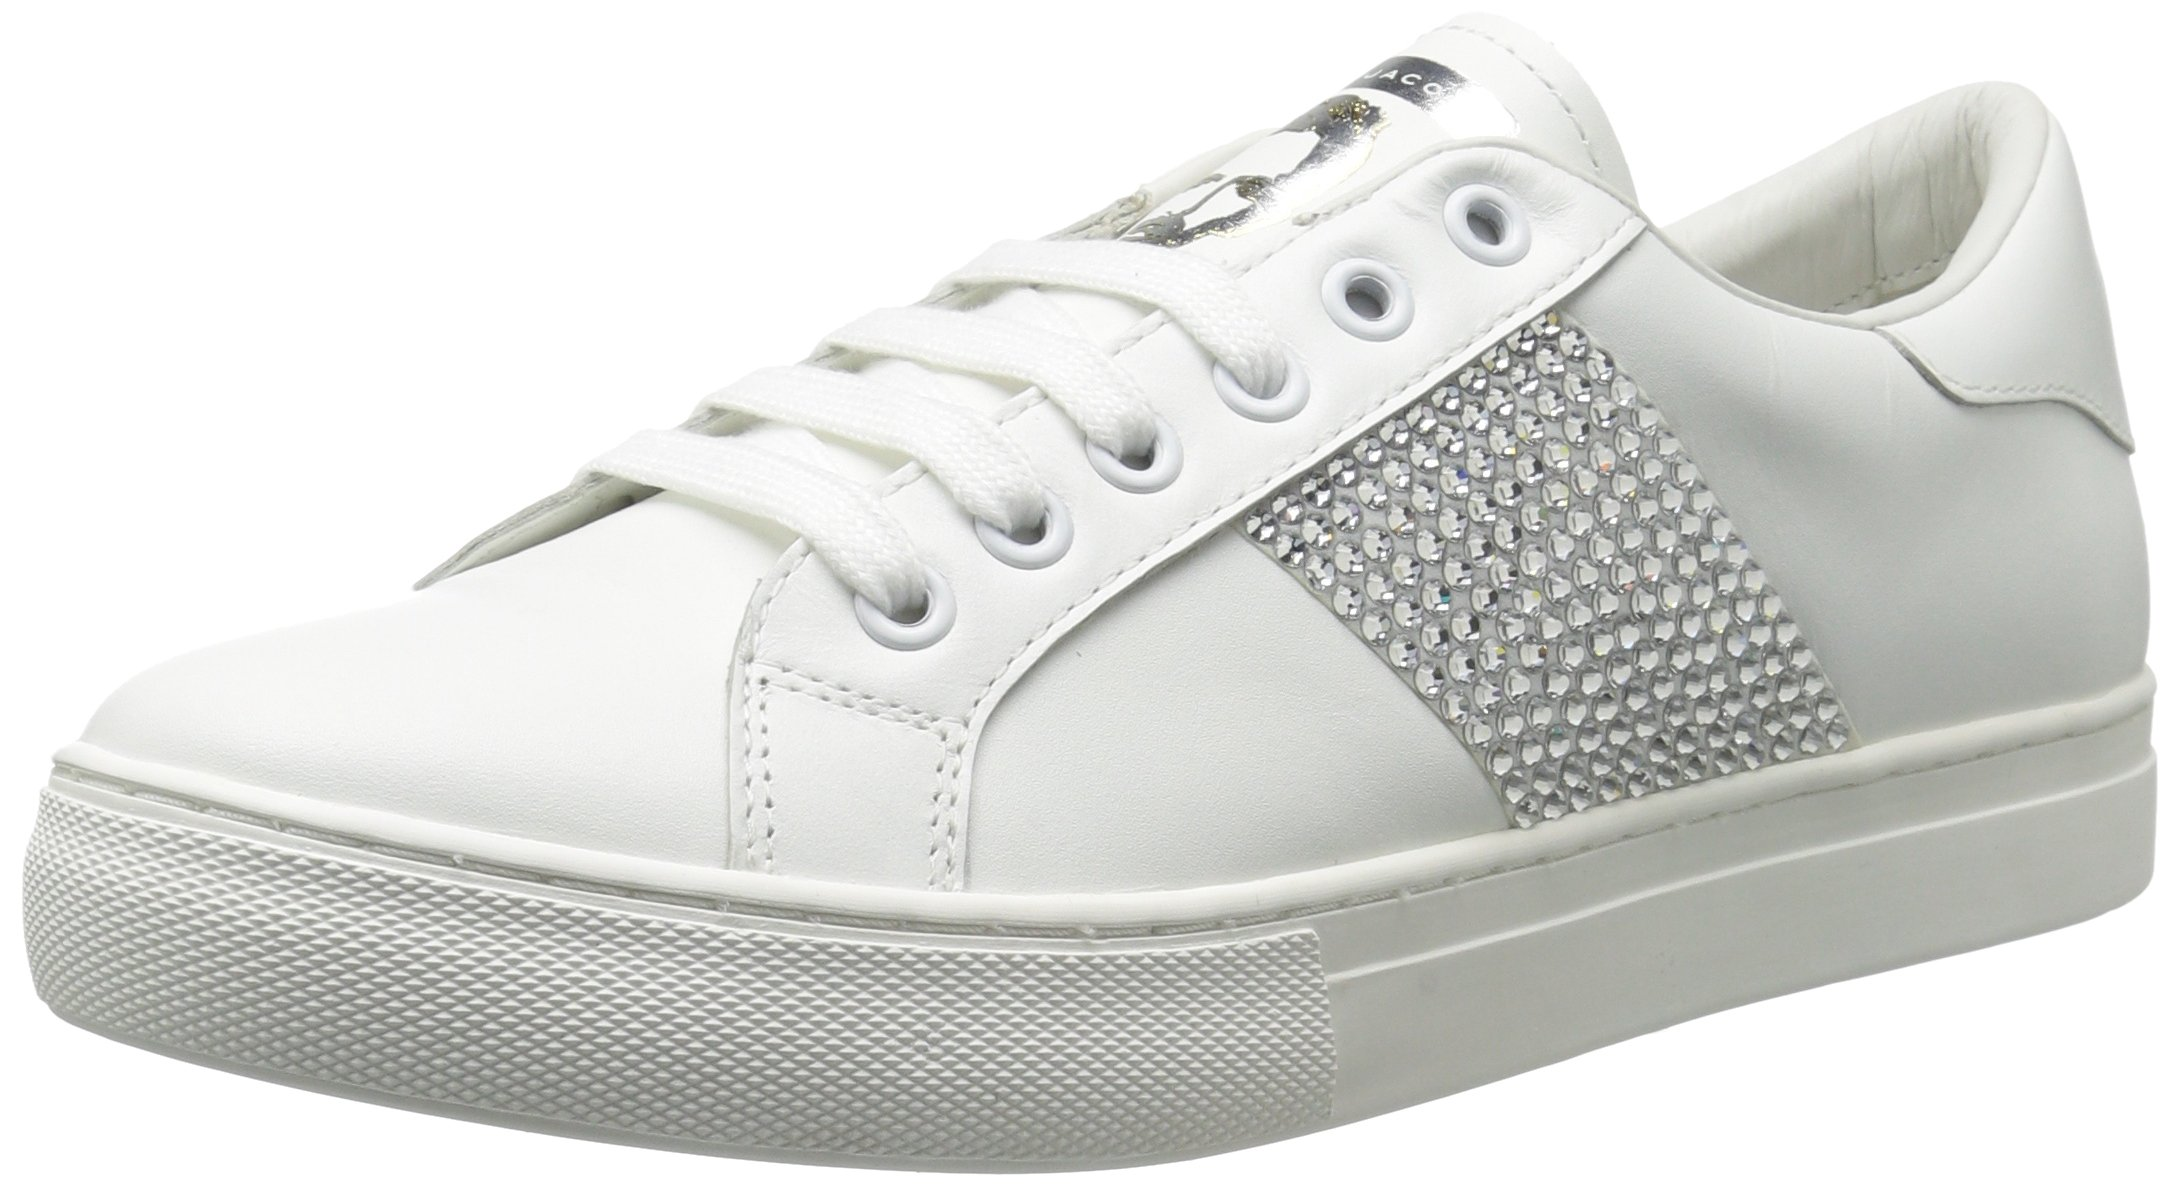 Marc Jacobs Women's Empire Strass Low Top Sneaker, White/Silver, 37 M EU (7 US)